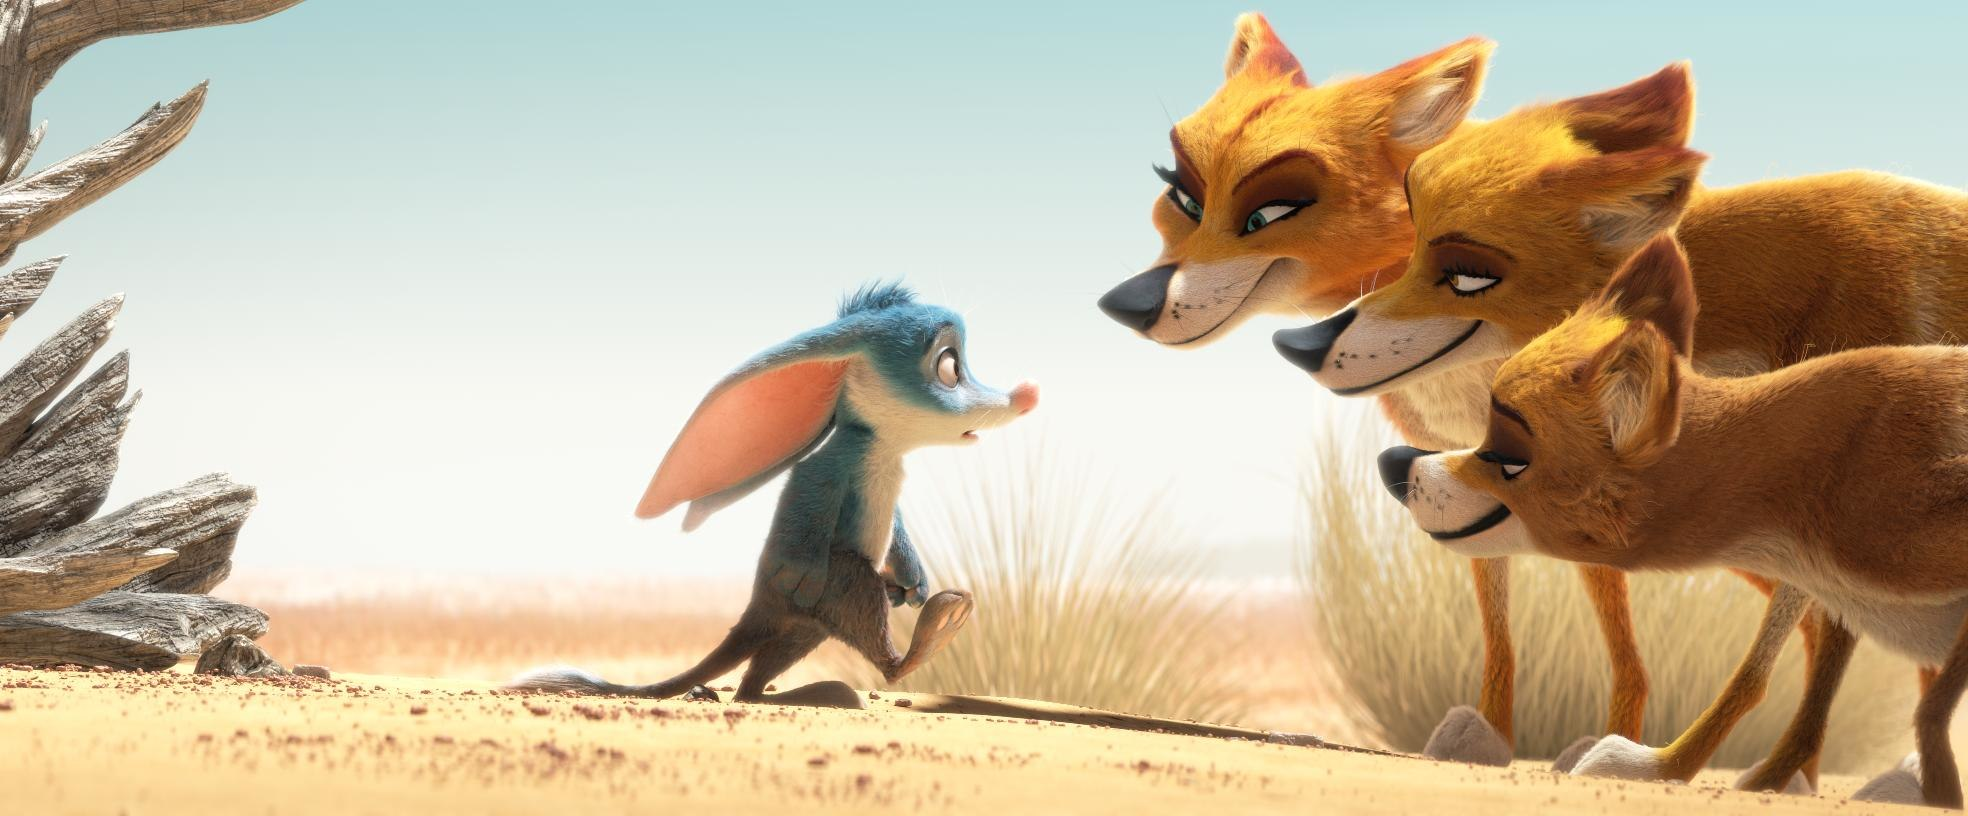 VIDEO: DreamWorks Animation Short 'Bilby' A Testing Ground